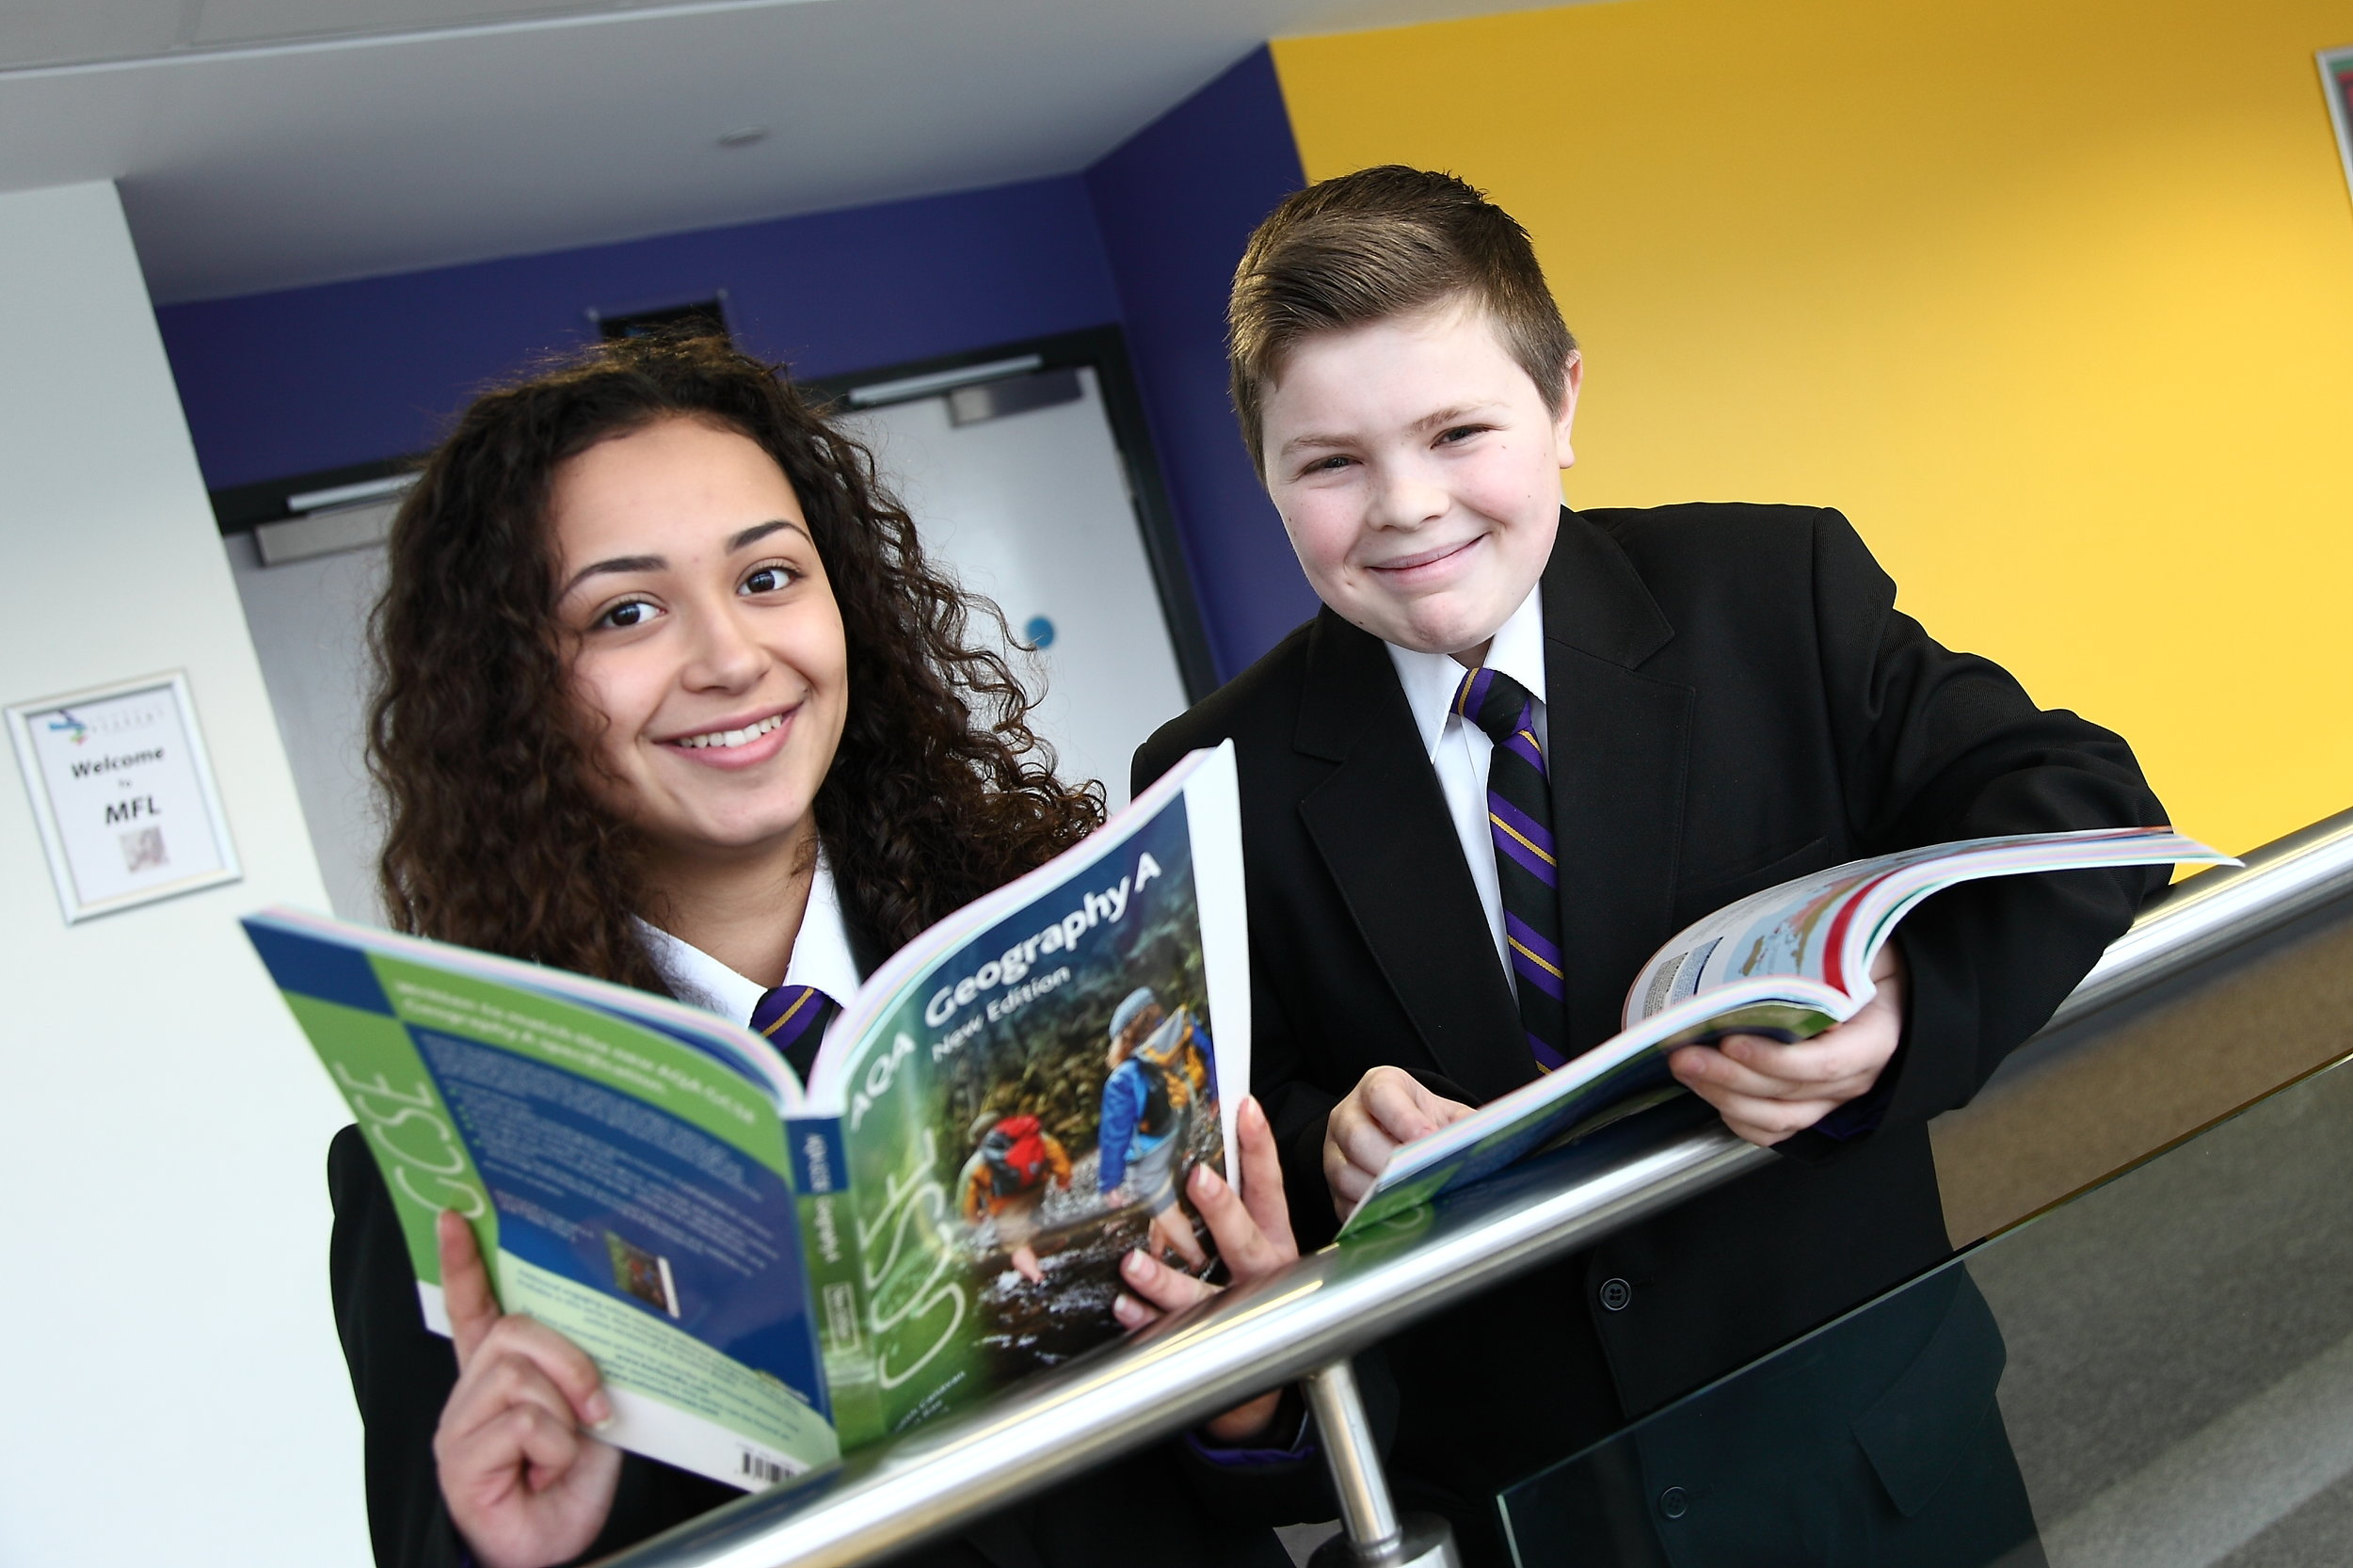 Participation - We are determined that our students engage in all areas of school life. There are substantial opportunities for allto formally and informally take part in a variety of meaningful activities, to take responsibility for events, make contributions to school life, and have their views considered in matters that affected them.